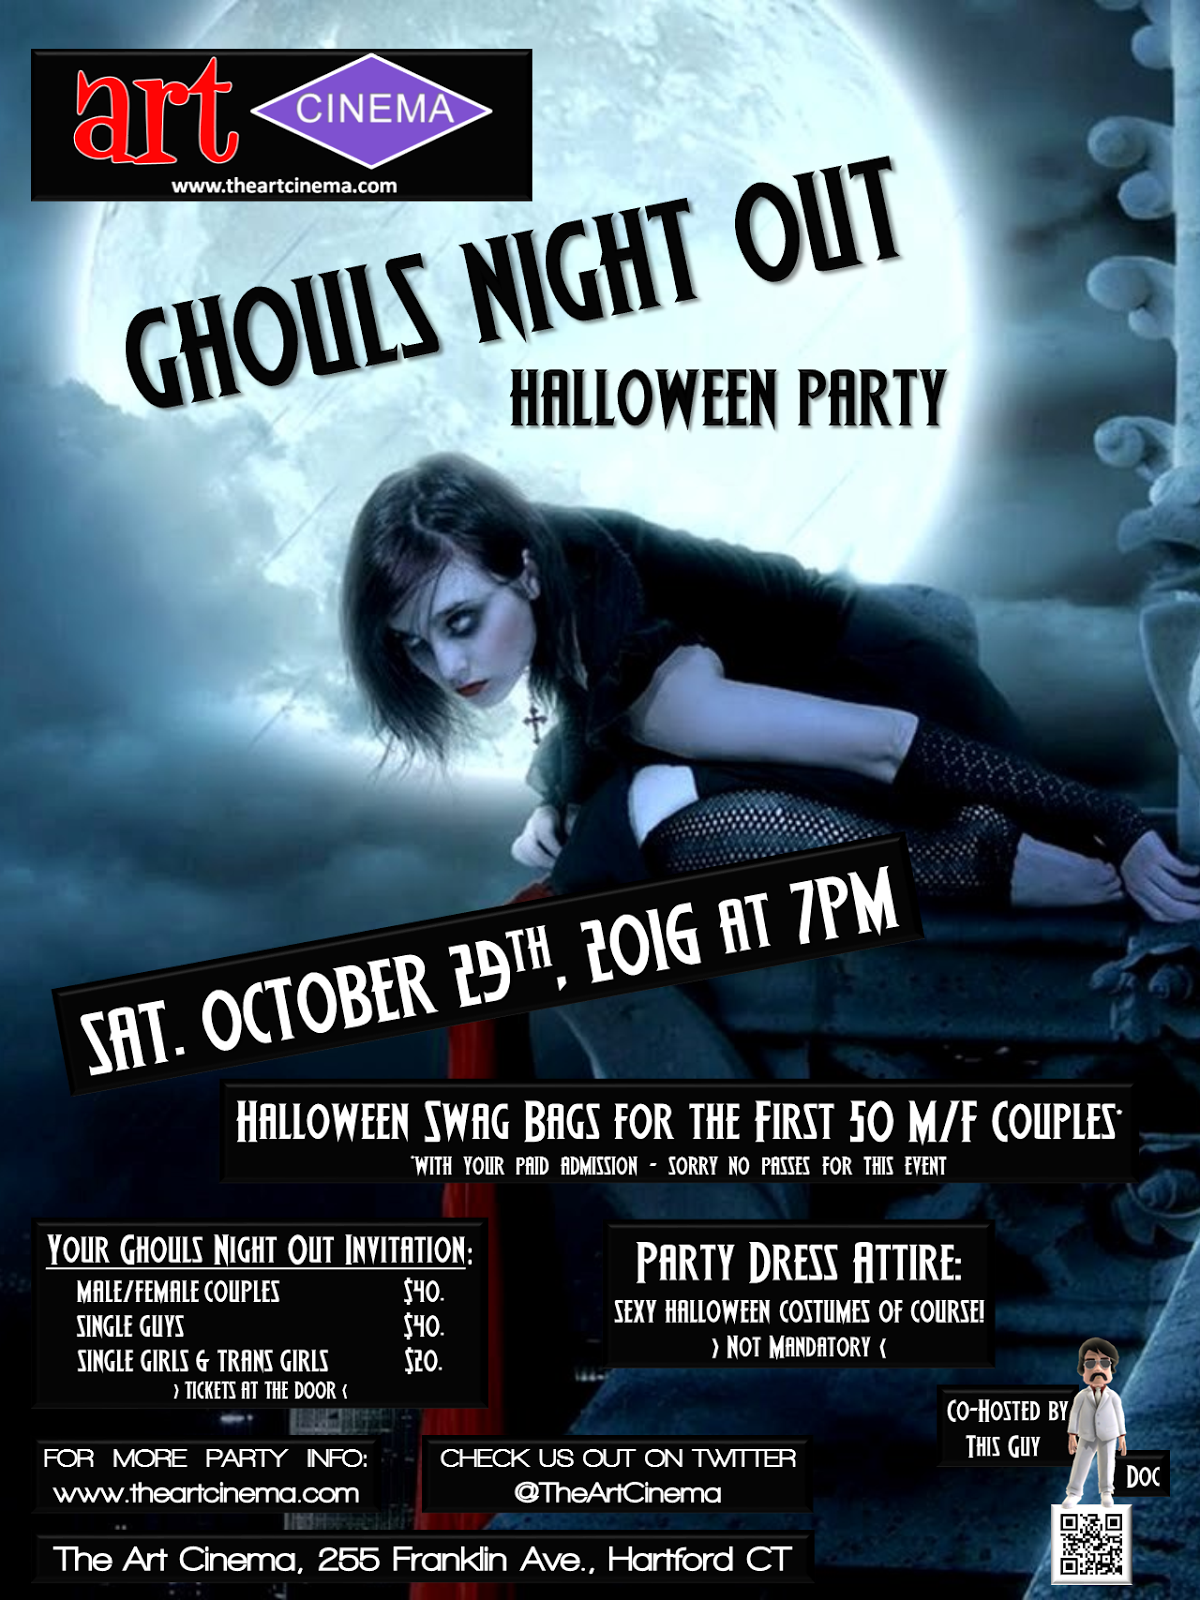 The Next Art Cinema Event! Ghouls Night Out Halloween Party!